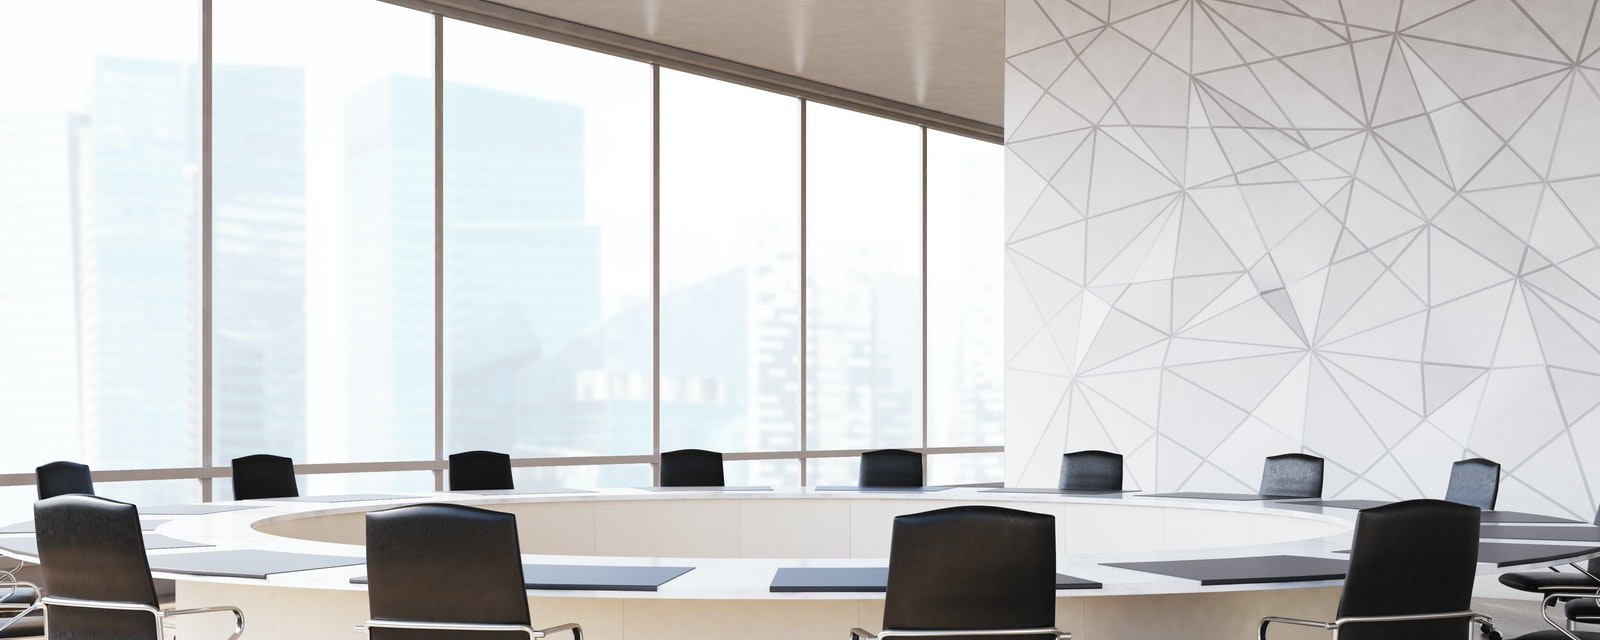 Conference Room Interior With A Round Table Black Office Chairs